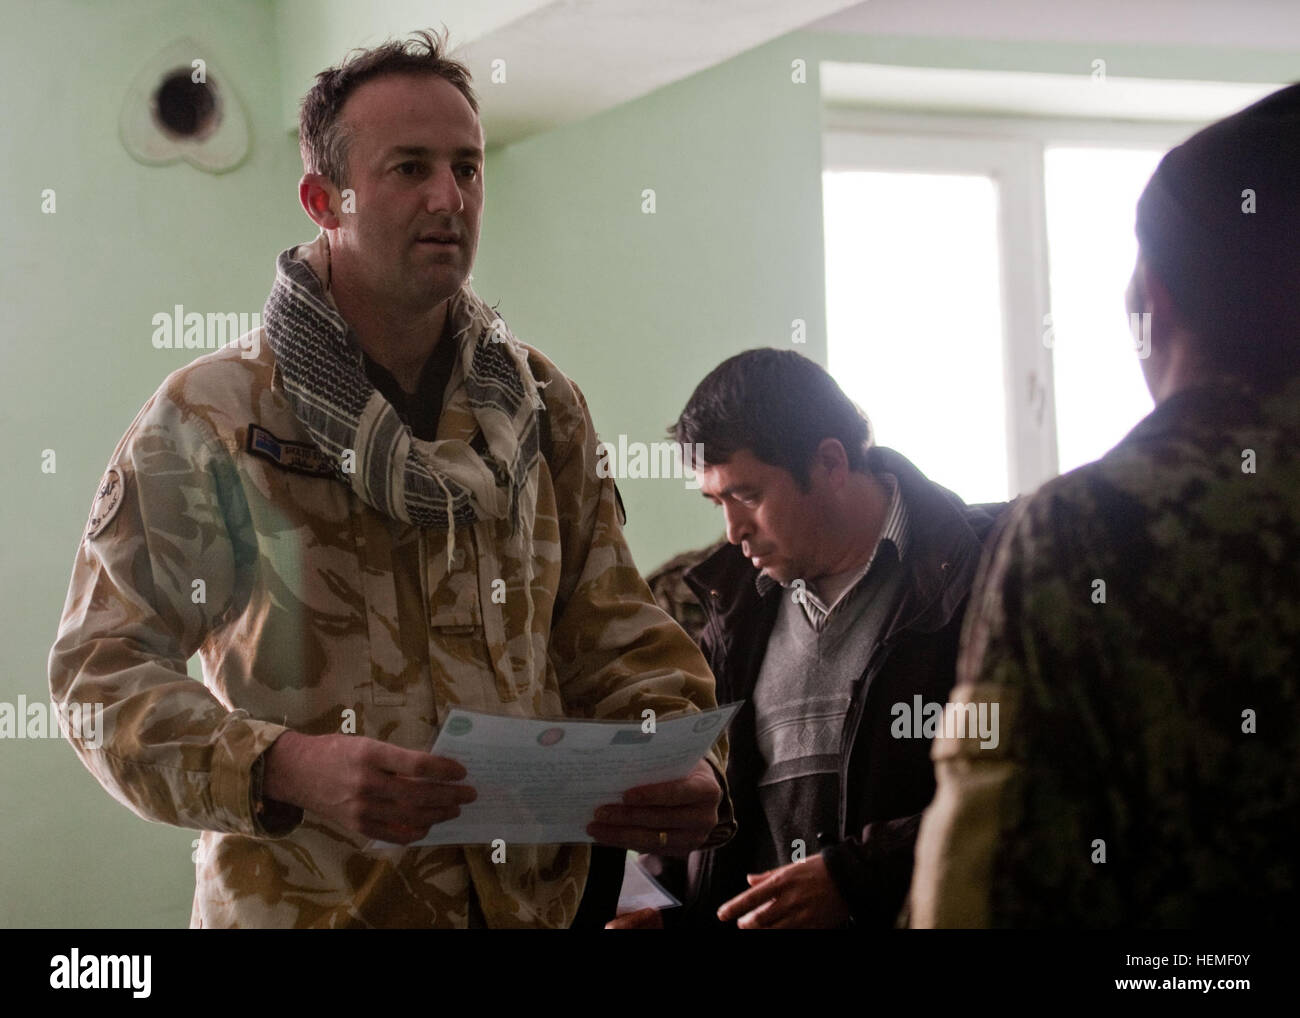 bamyan province army lt col sholto  bamyan province army lt col sholto stephens the commanding officer for the military component of the nz provincial